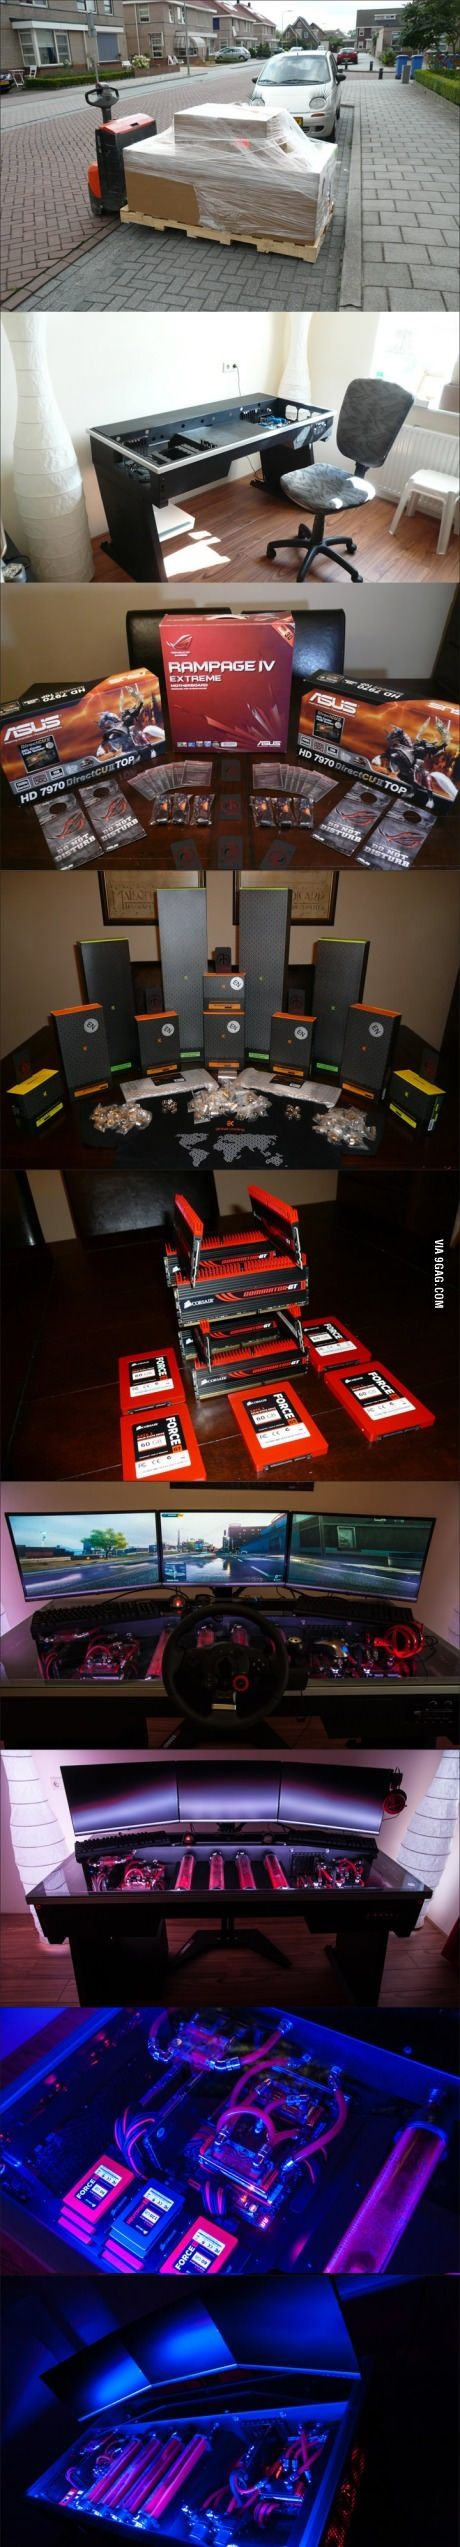 Ultimate gaming station